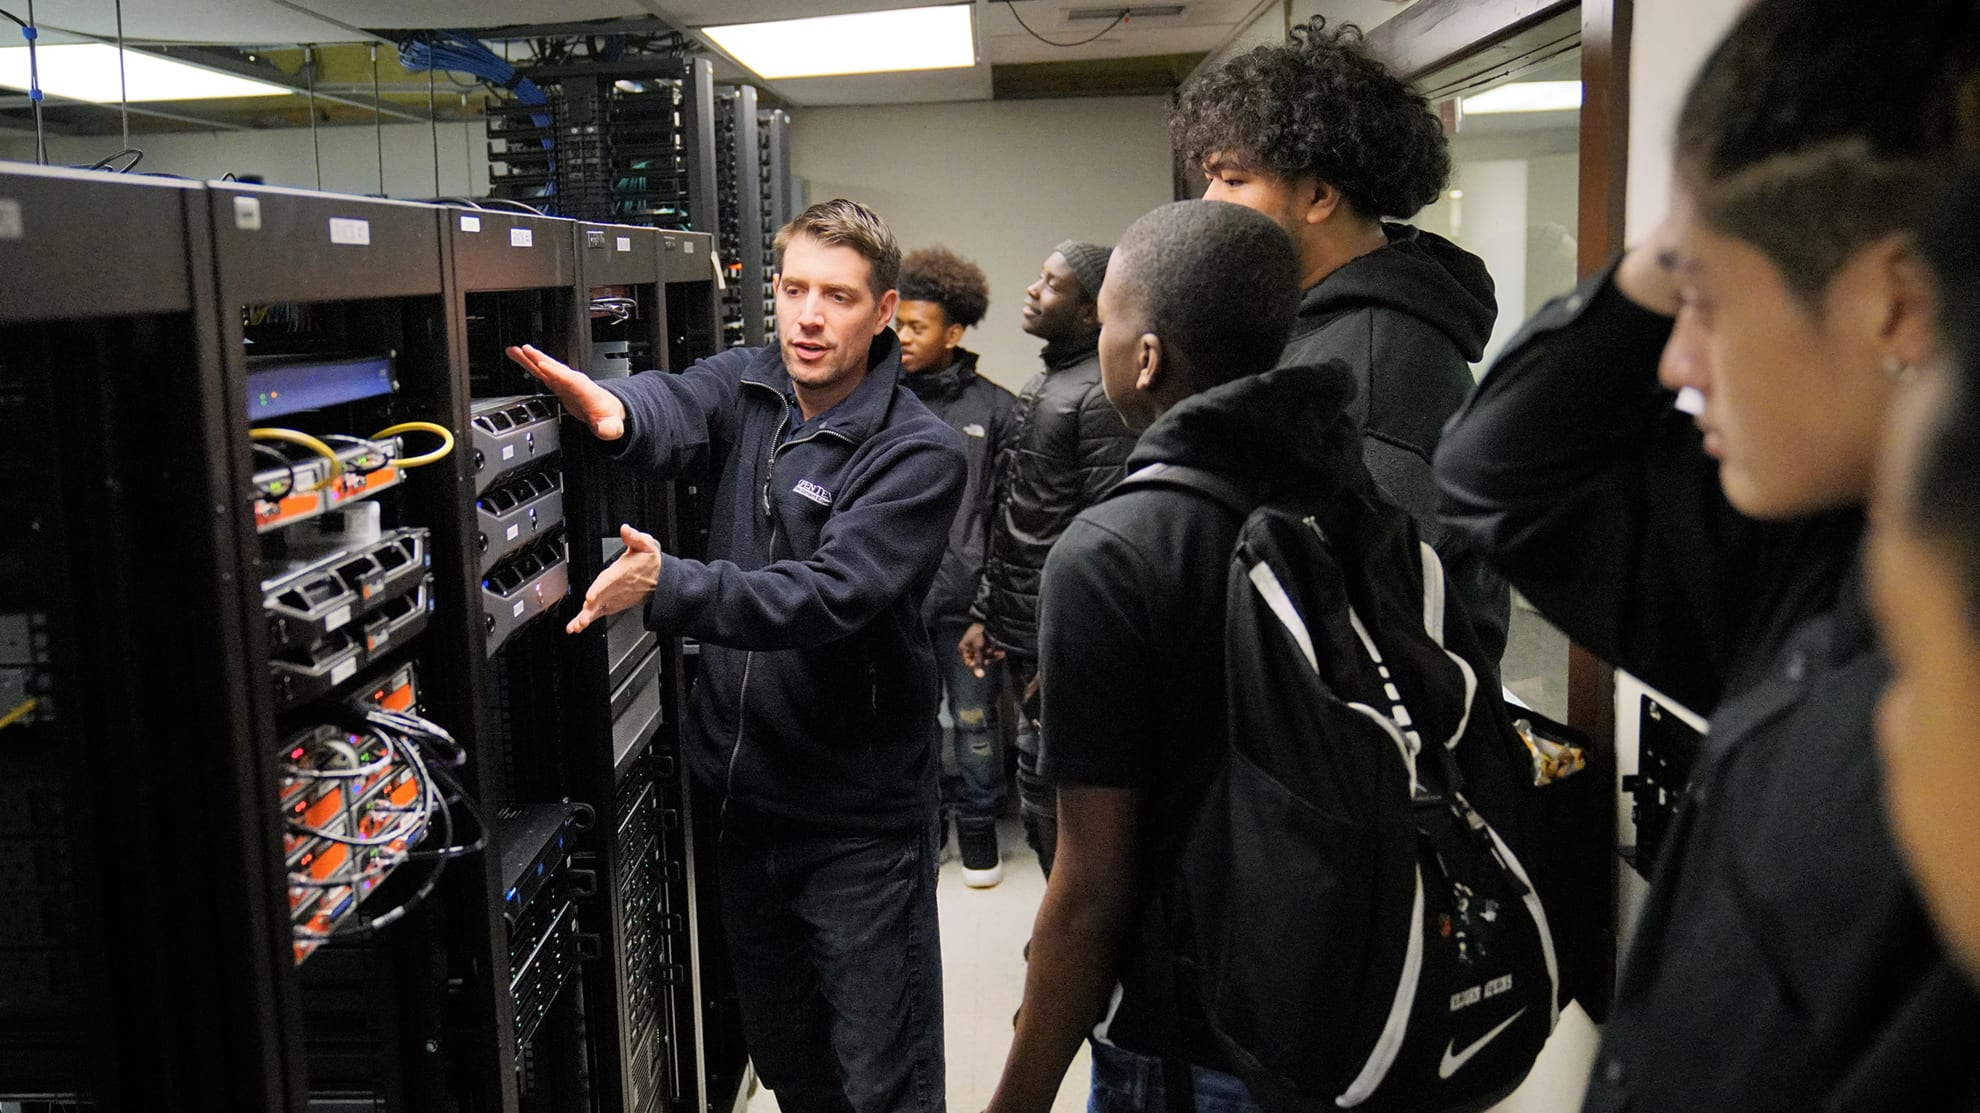 an information technology manager teaching students in front of a computer server